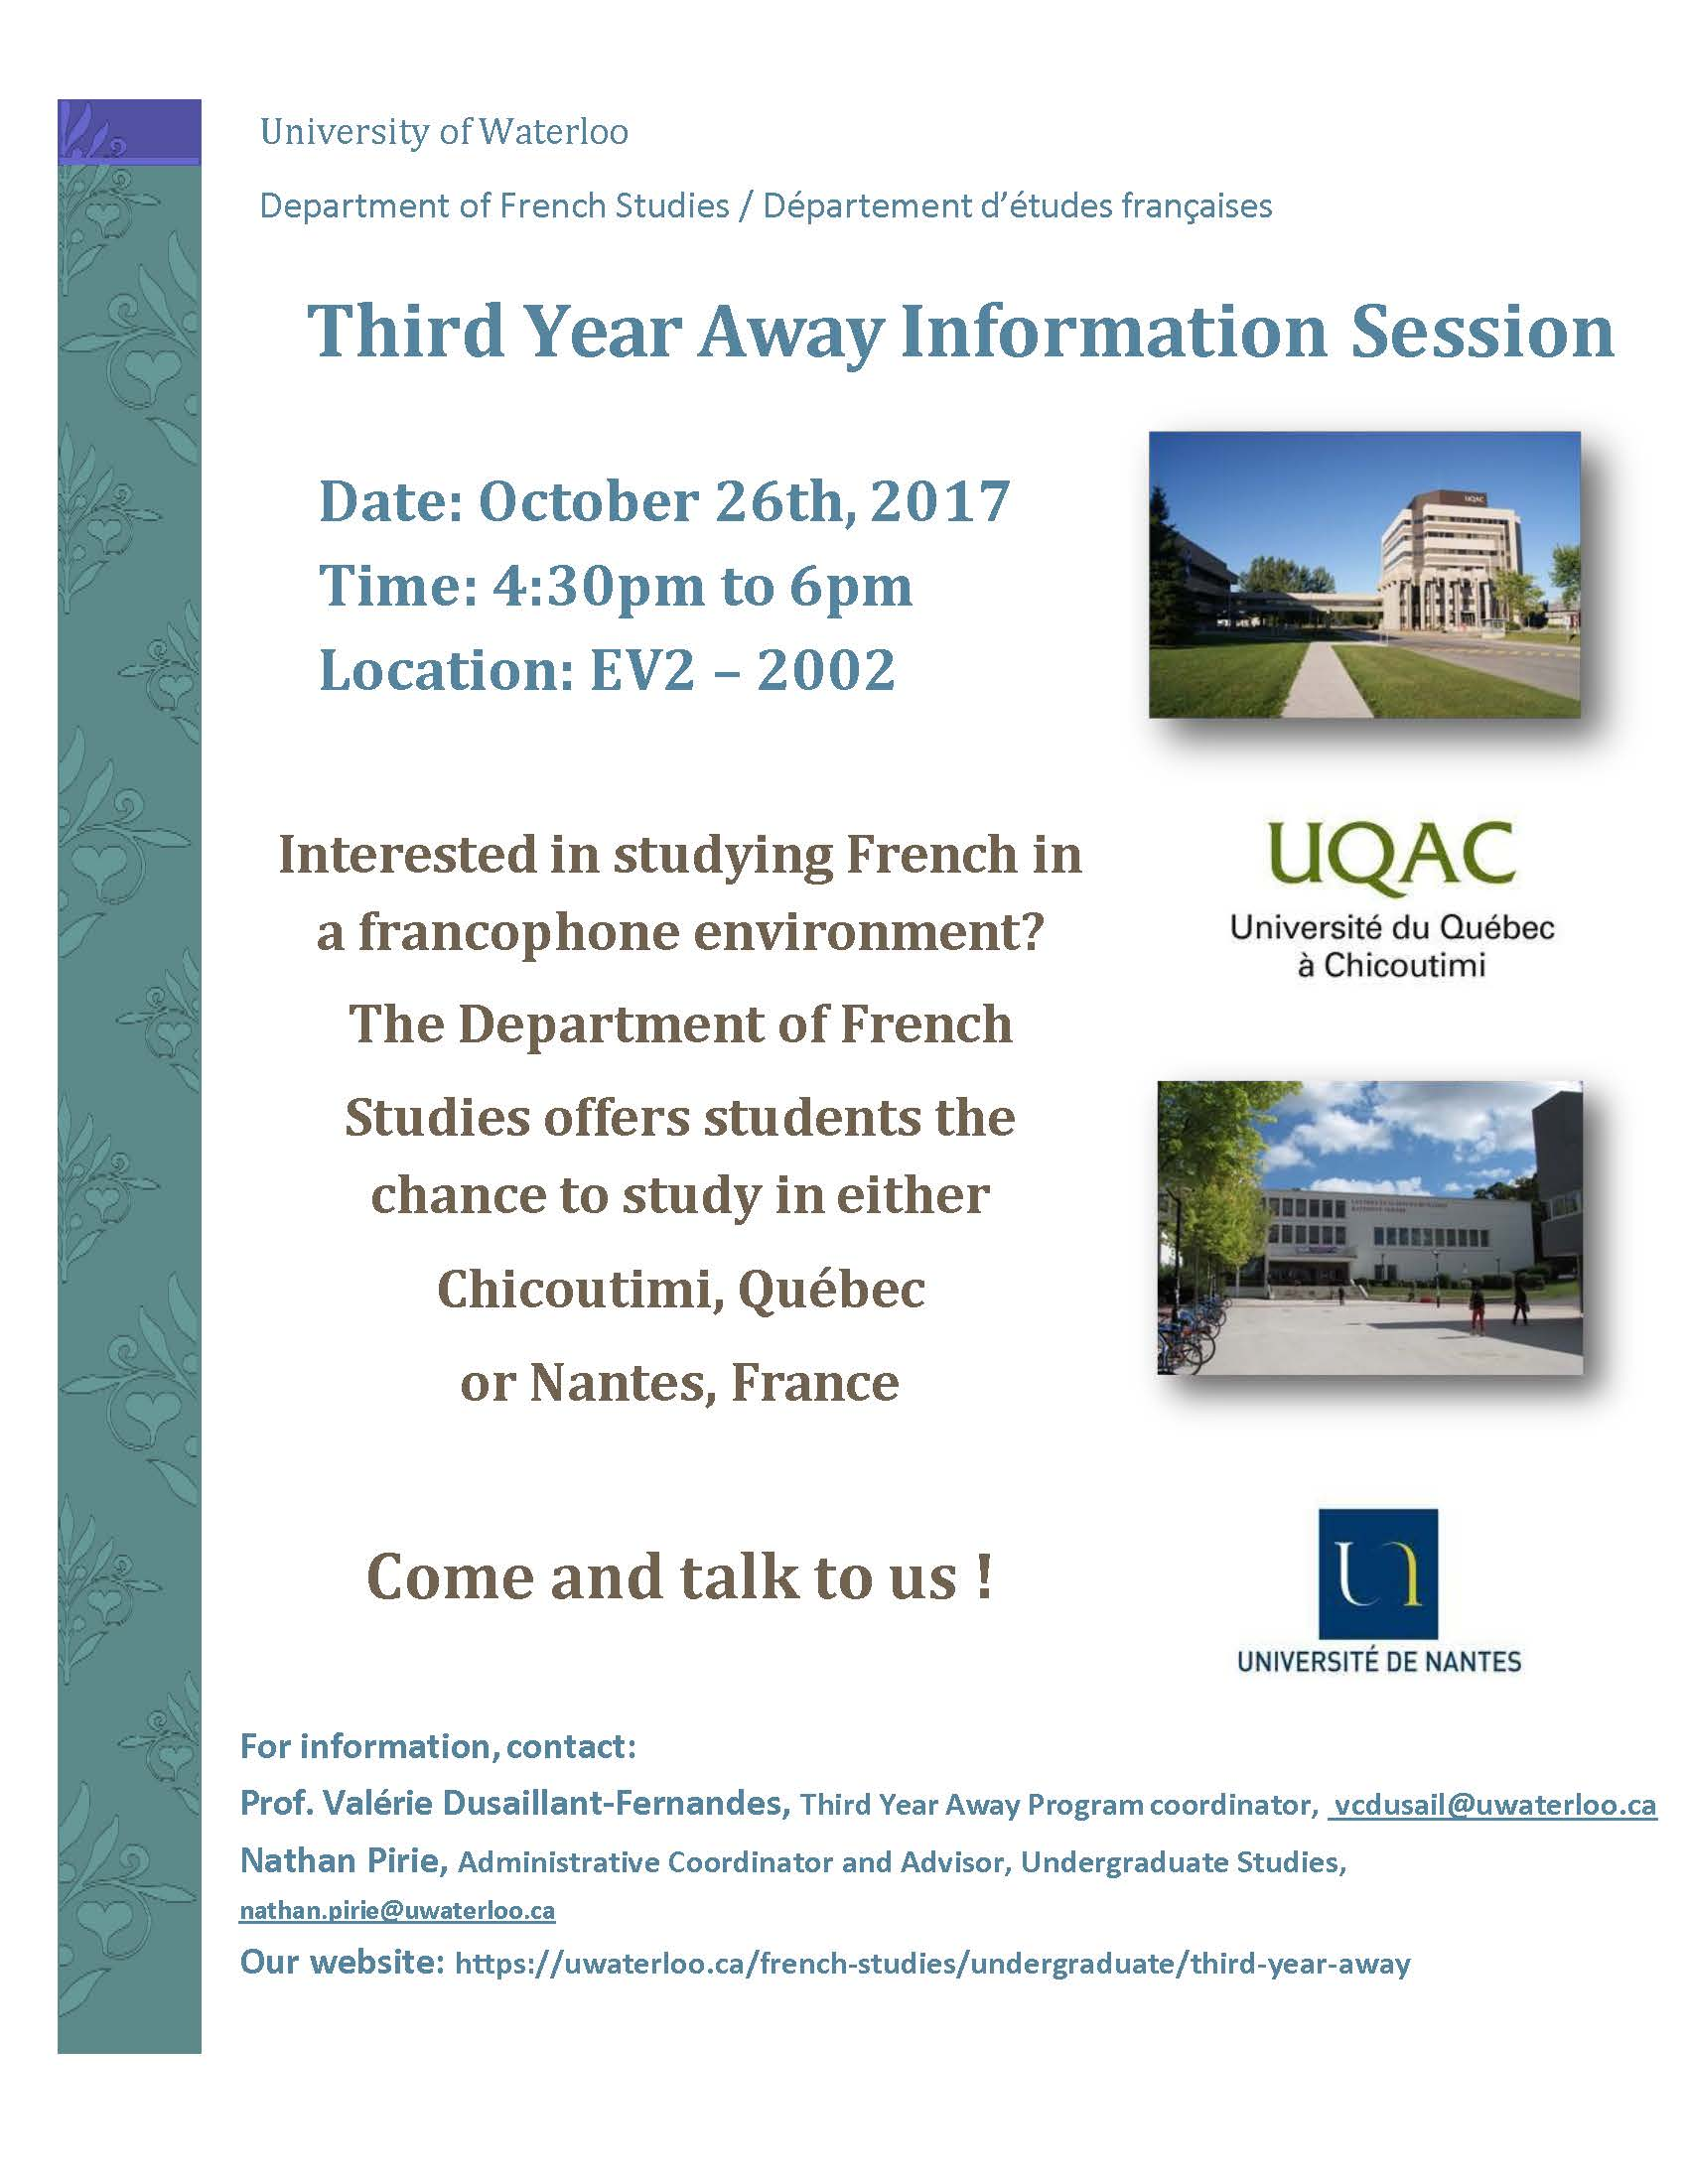 Information meeting poster